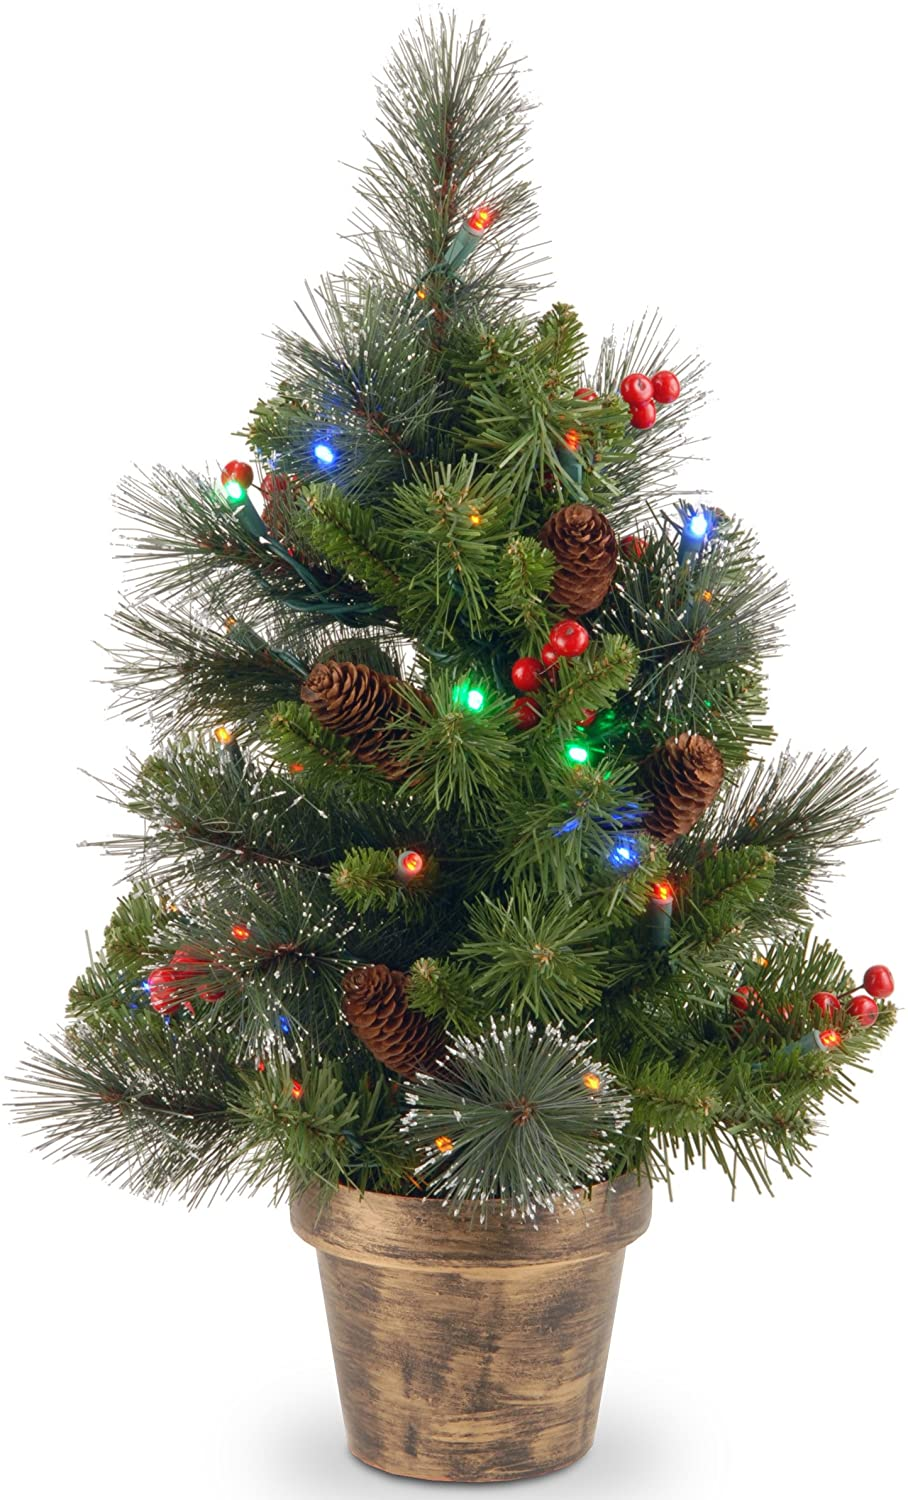 Tree Company Pre-Lit Artificial Christmas Tree | Trimmed with Mixed Decorations and Multicolor LED Lights | Crestwood Spruce - 2 ft